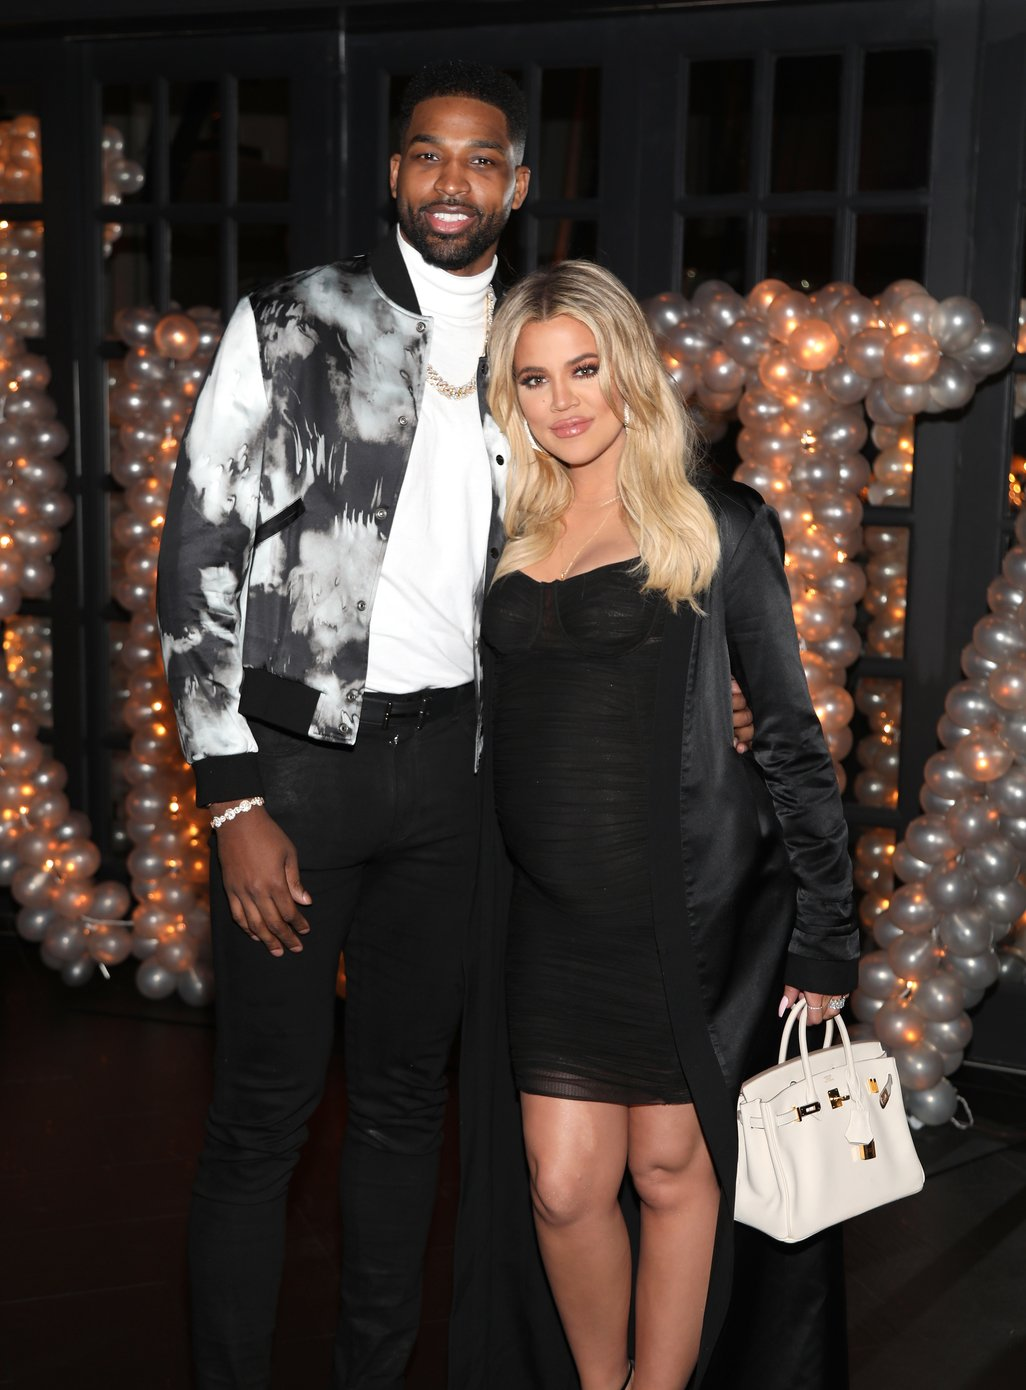 Tristan Thompson and Khloe Kardashian celebrate his birthday at Beauty & Essex on March 10, 2018, in Los Angeles, California. | Photo: GettyImages